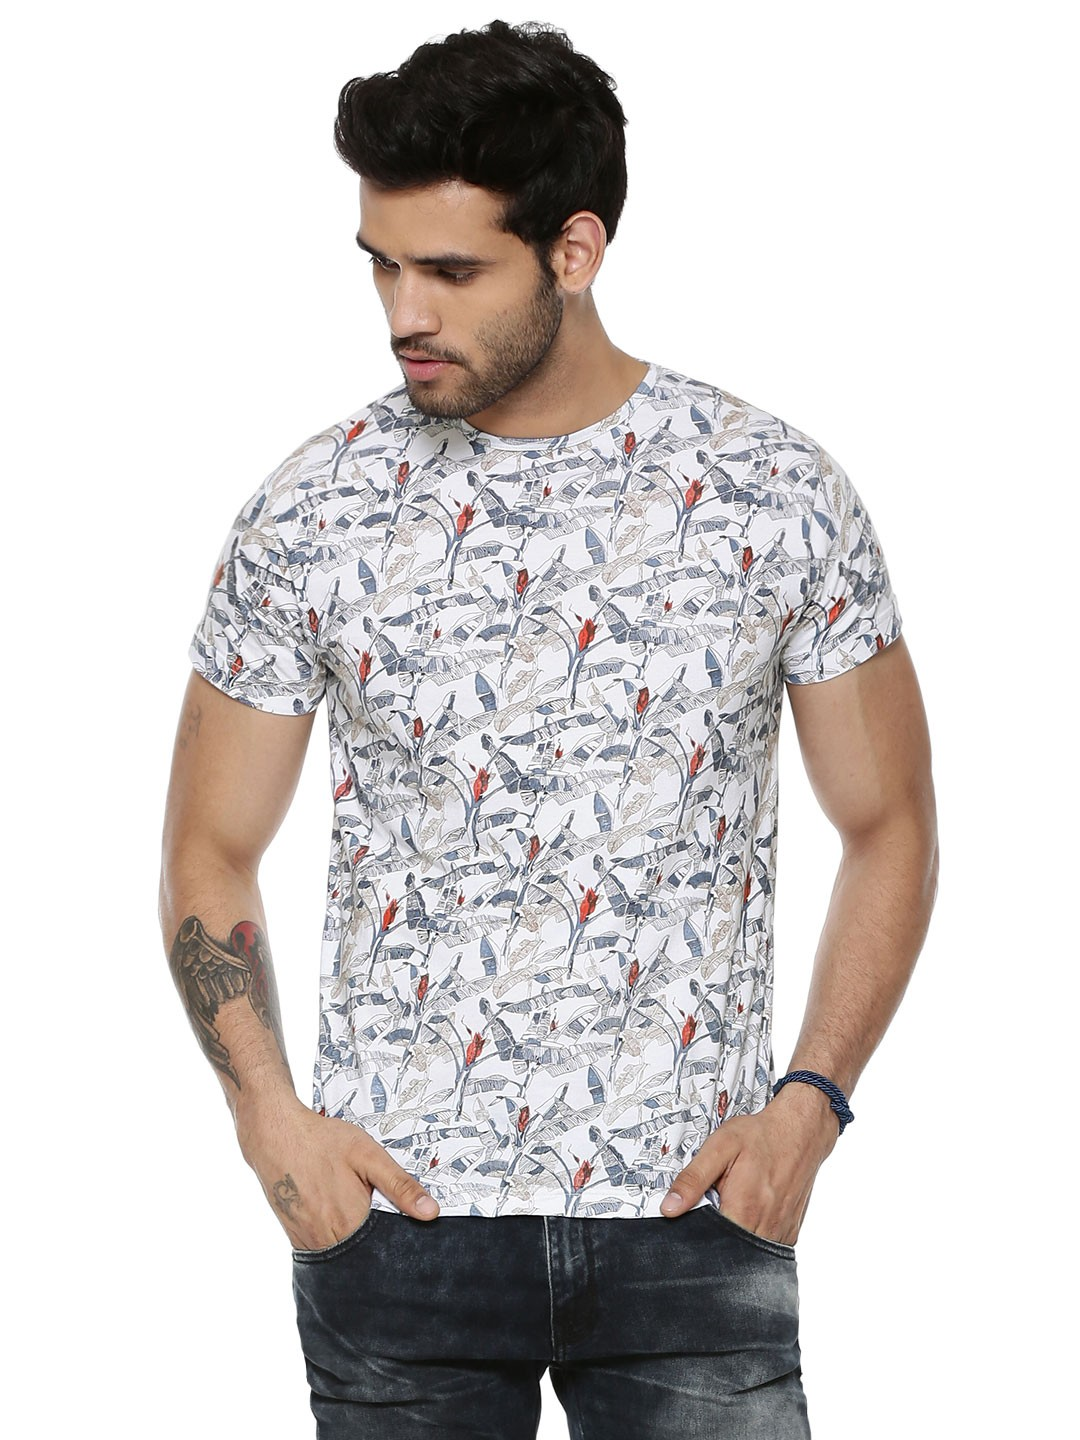 Buy pepe jeans rose floral printed t shirt for men men 39 s for Printed t shirts india